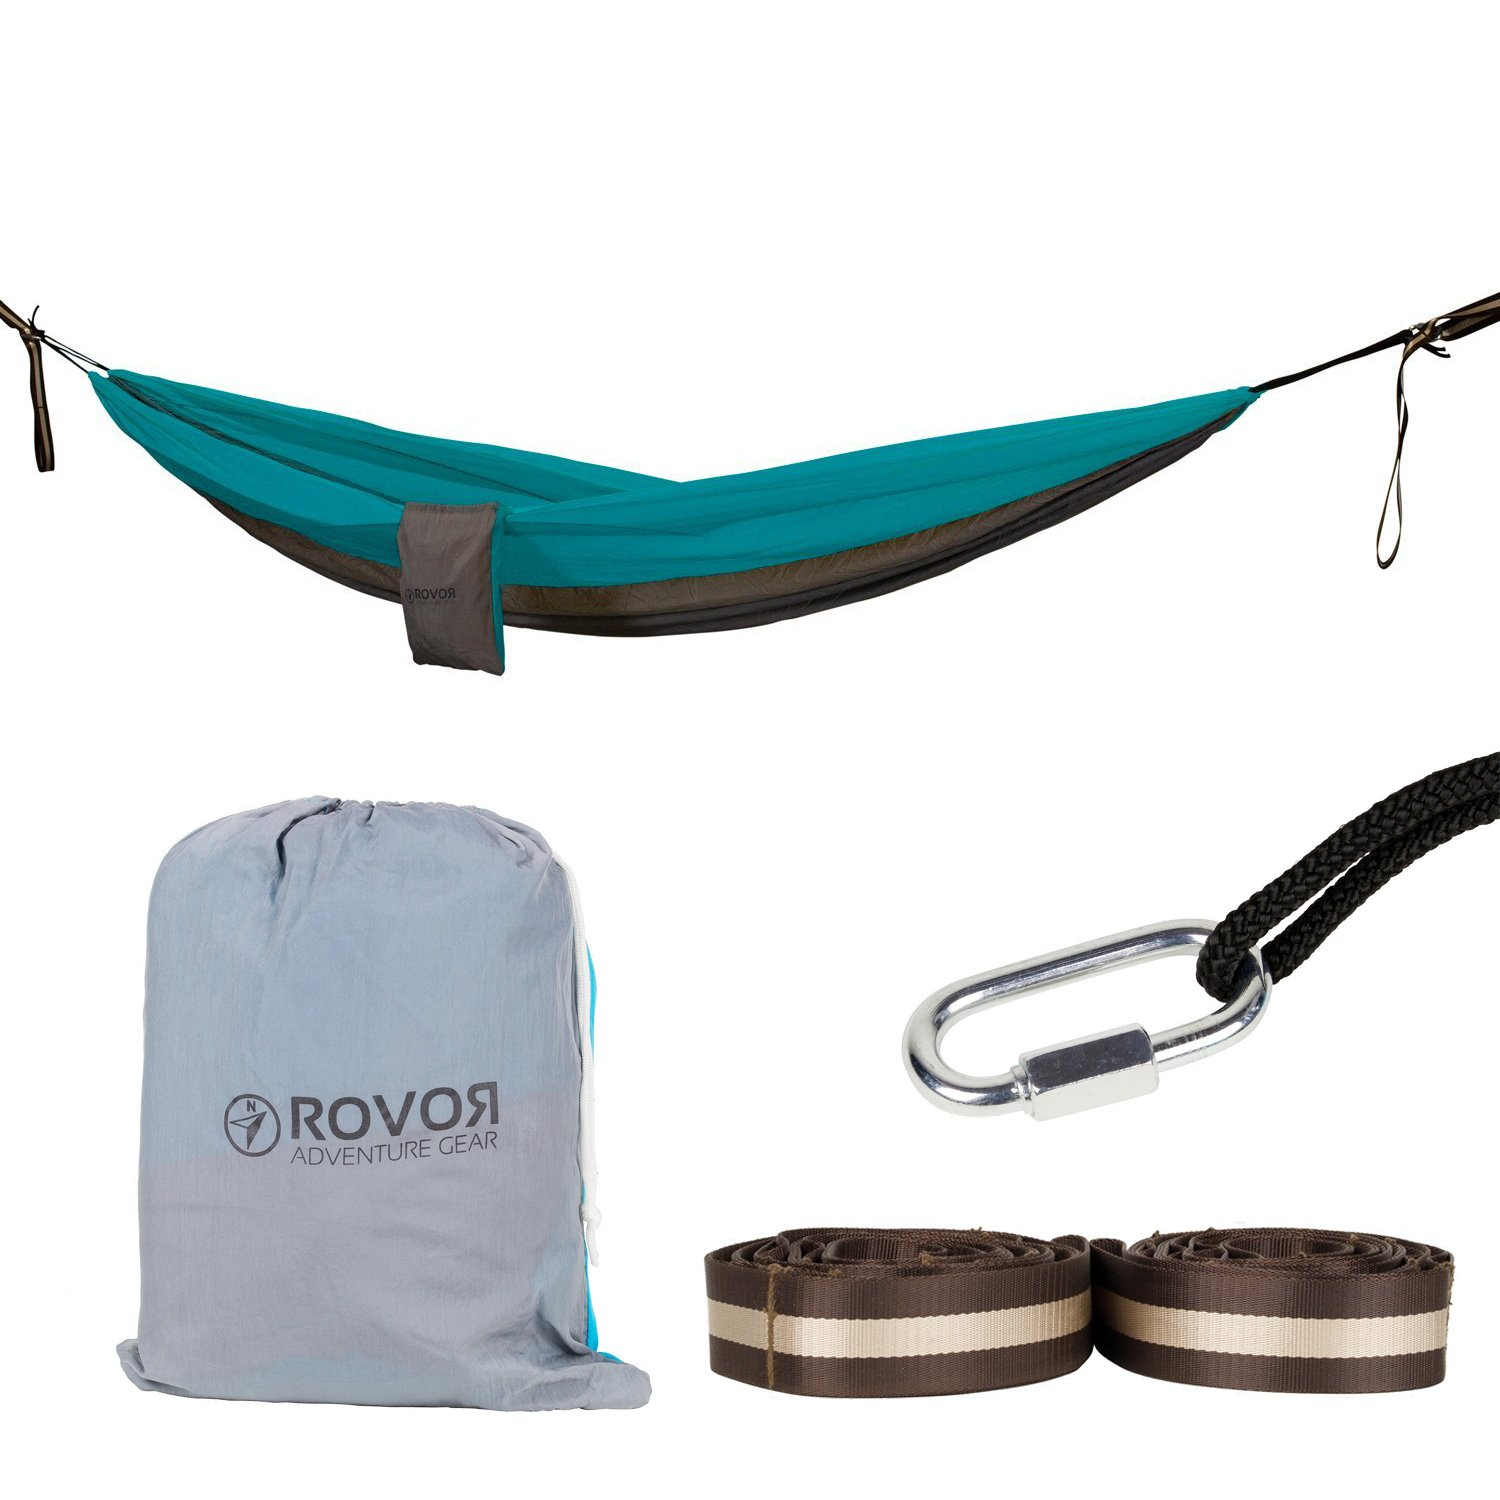 Includes Tree Hammock Straps and Carabiners Makes a Great 2 Person Camping Hammock Rovor Adventure Gear ROVOR Chill-Onne Double Hammock with Quadruple Stitching